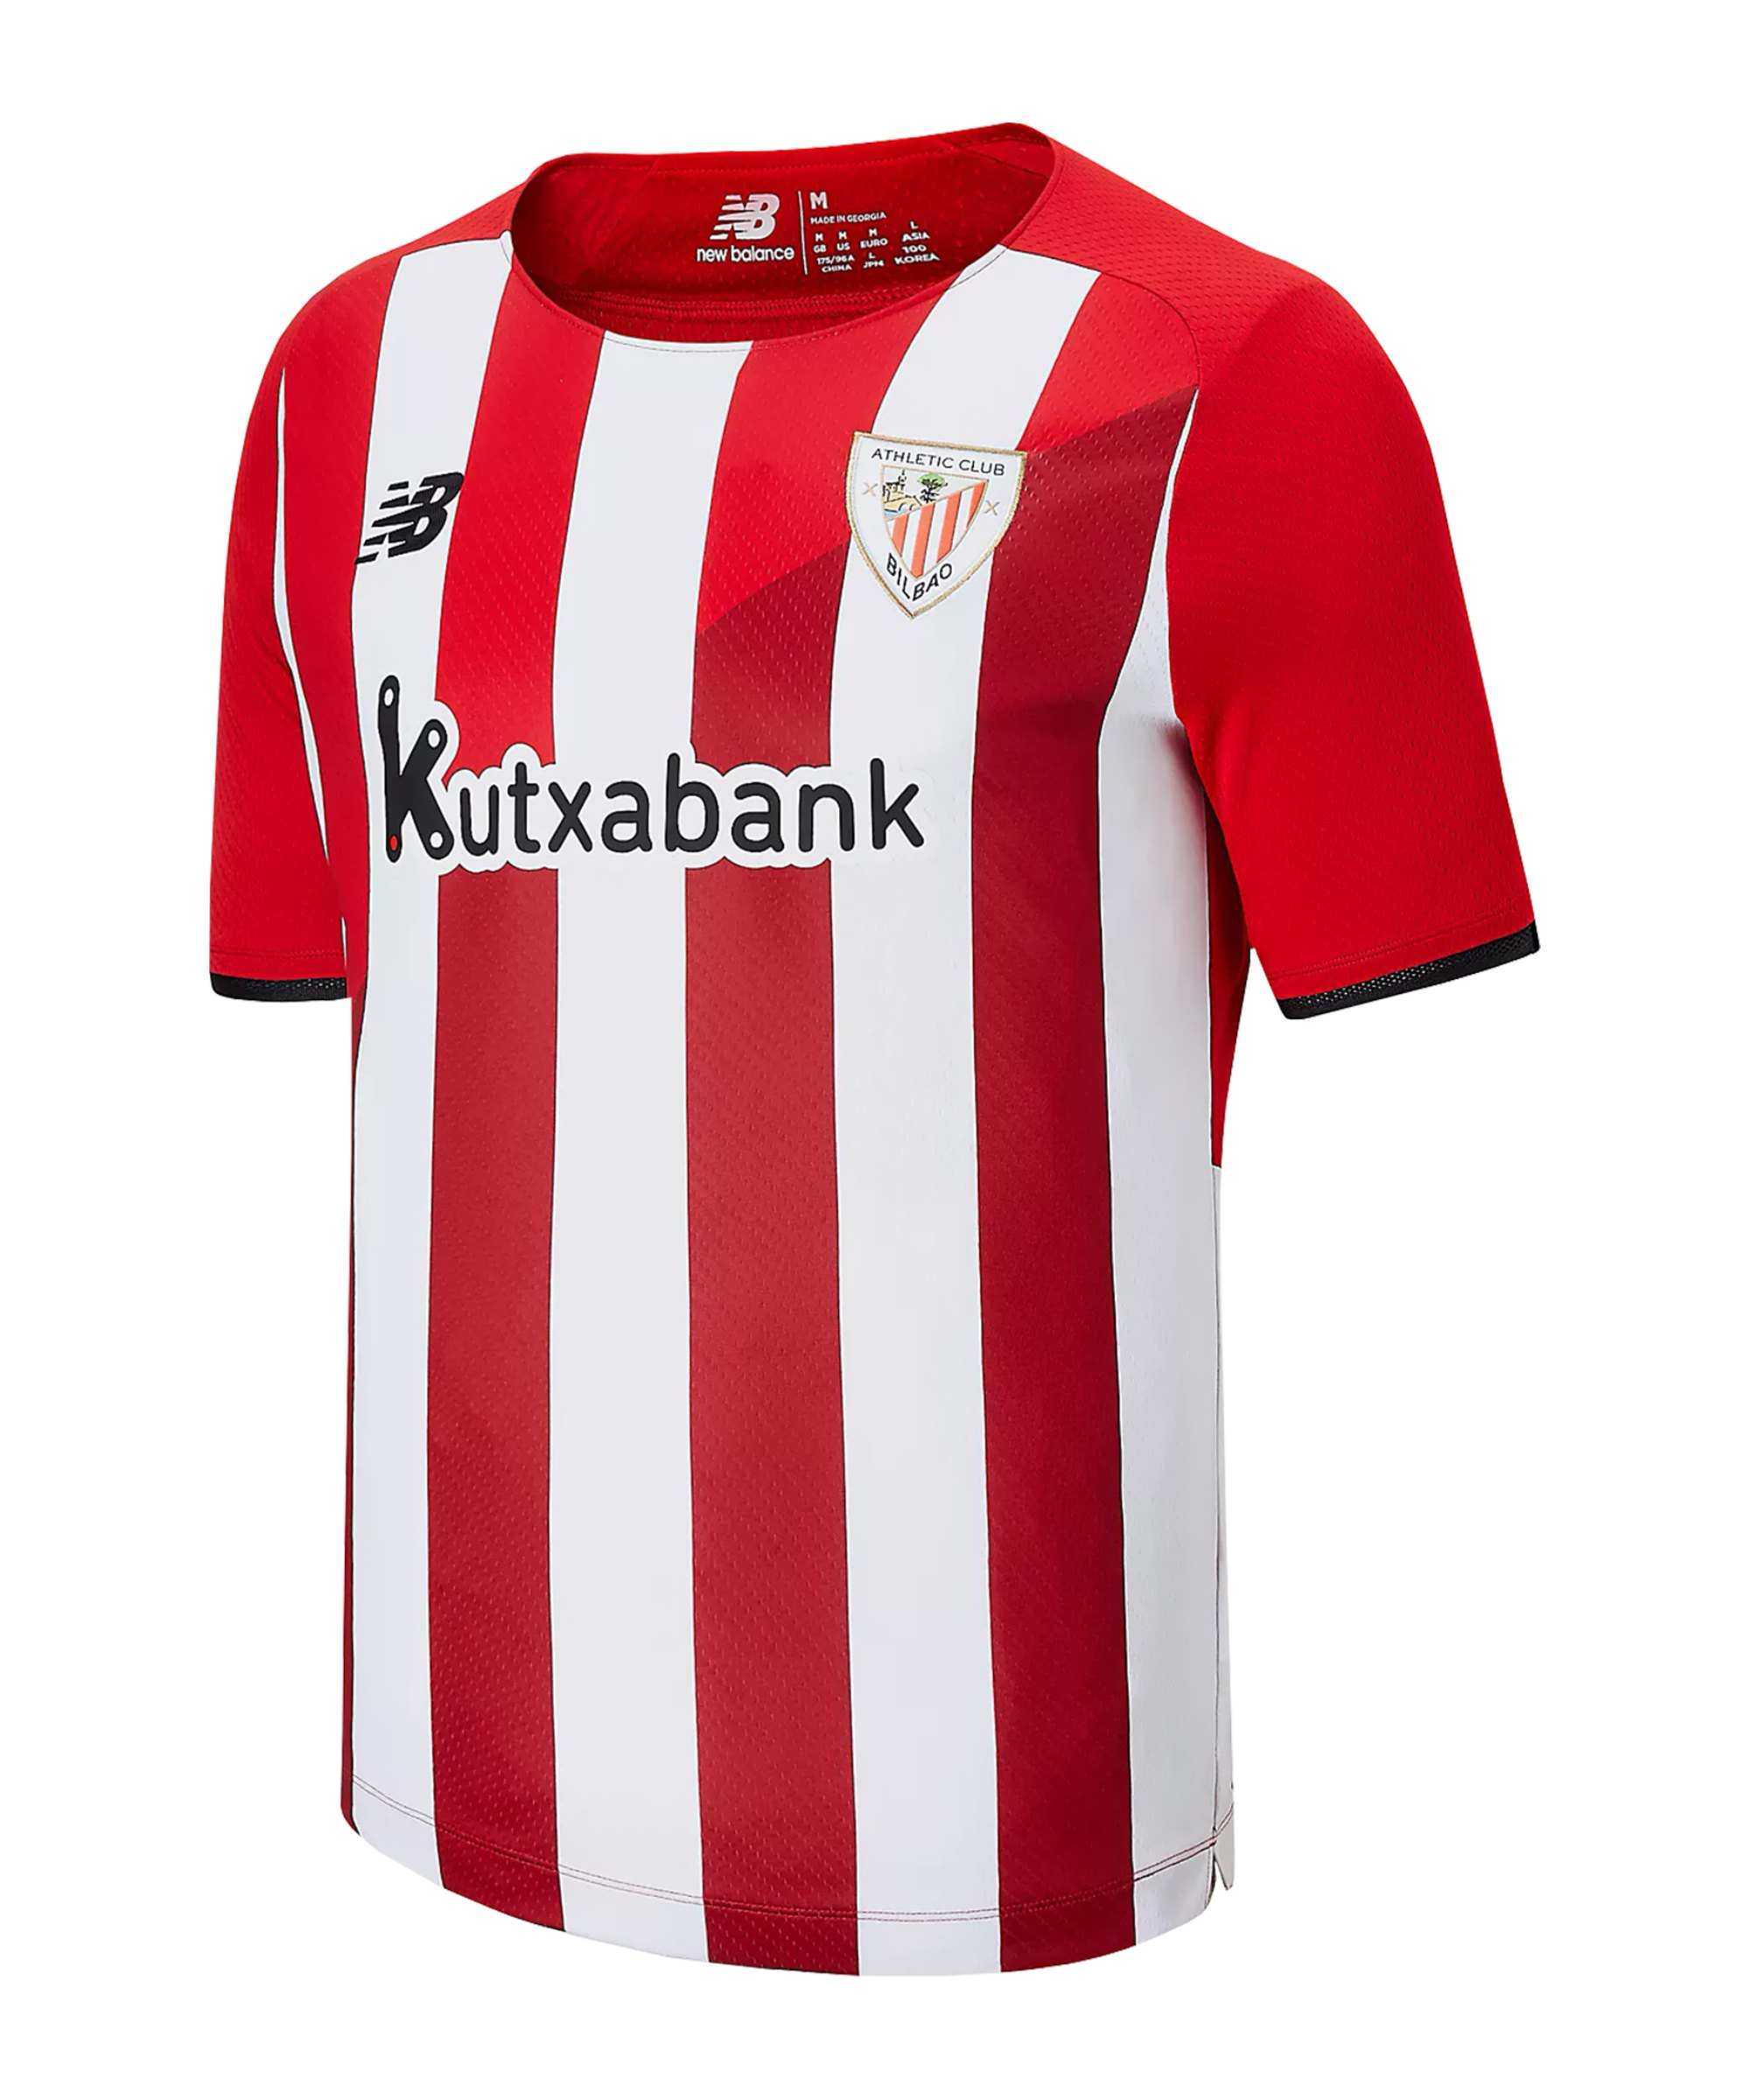 New Balance Athletic Bilbao Trikot Home 2021/2022 Rot Weiss FHME - rot